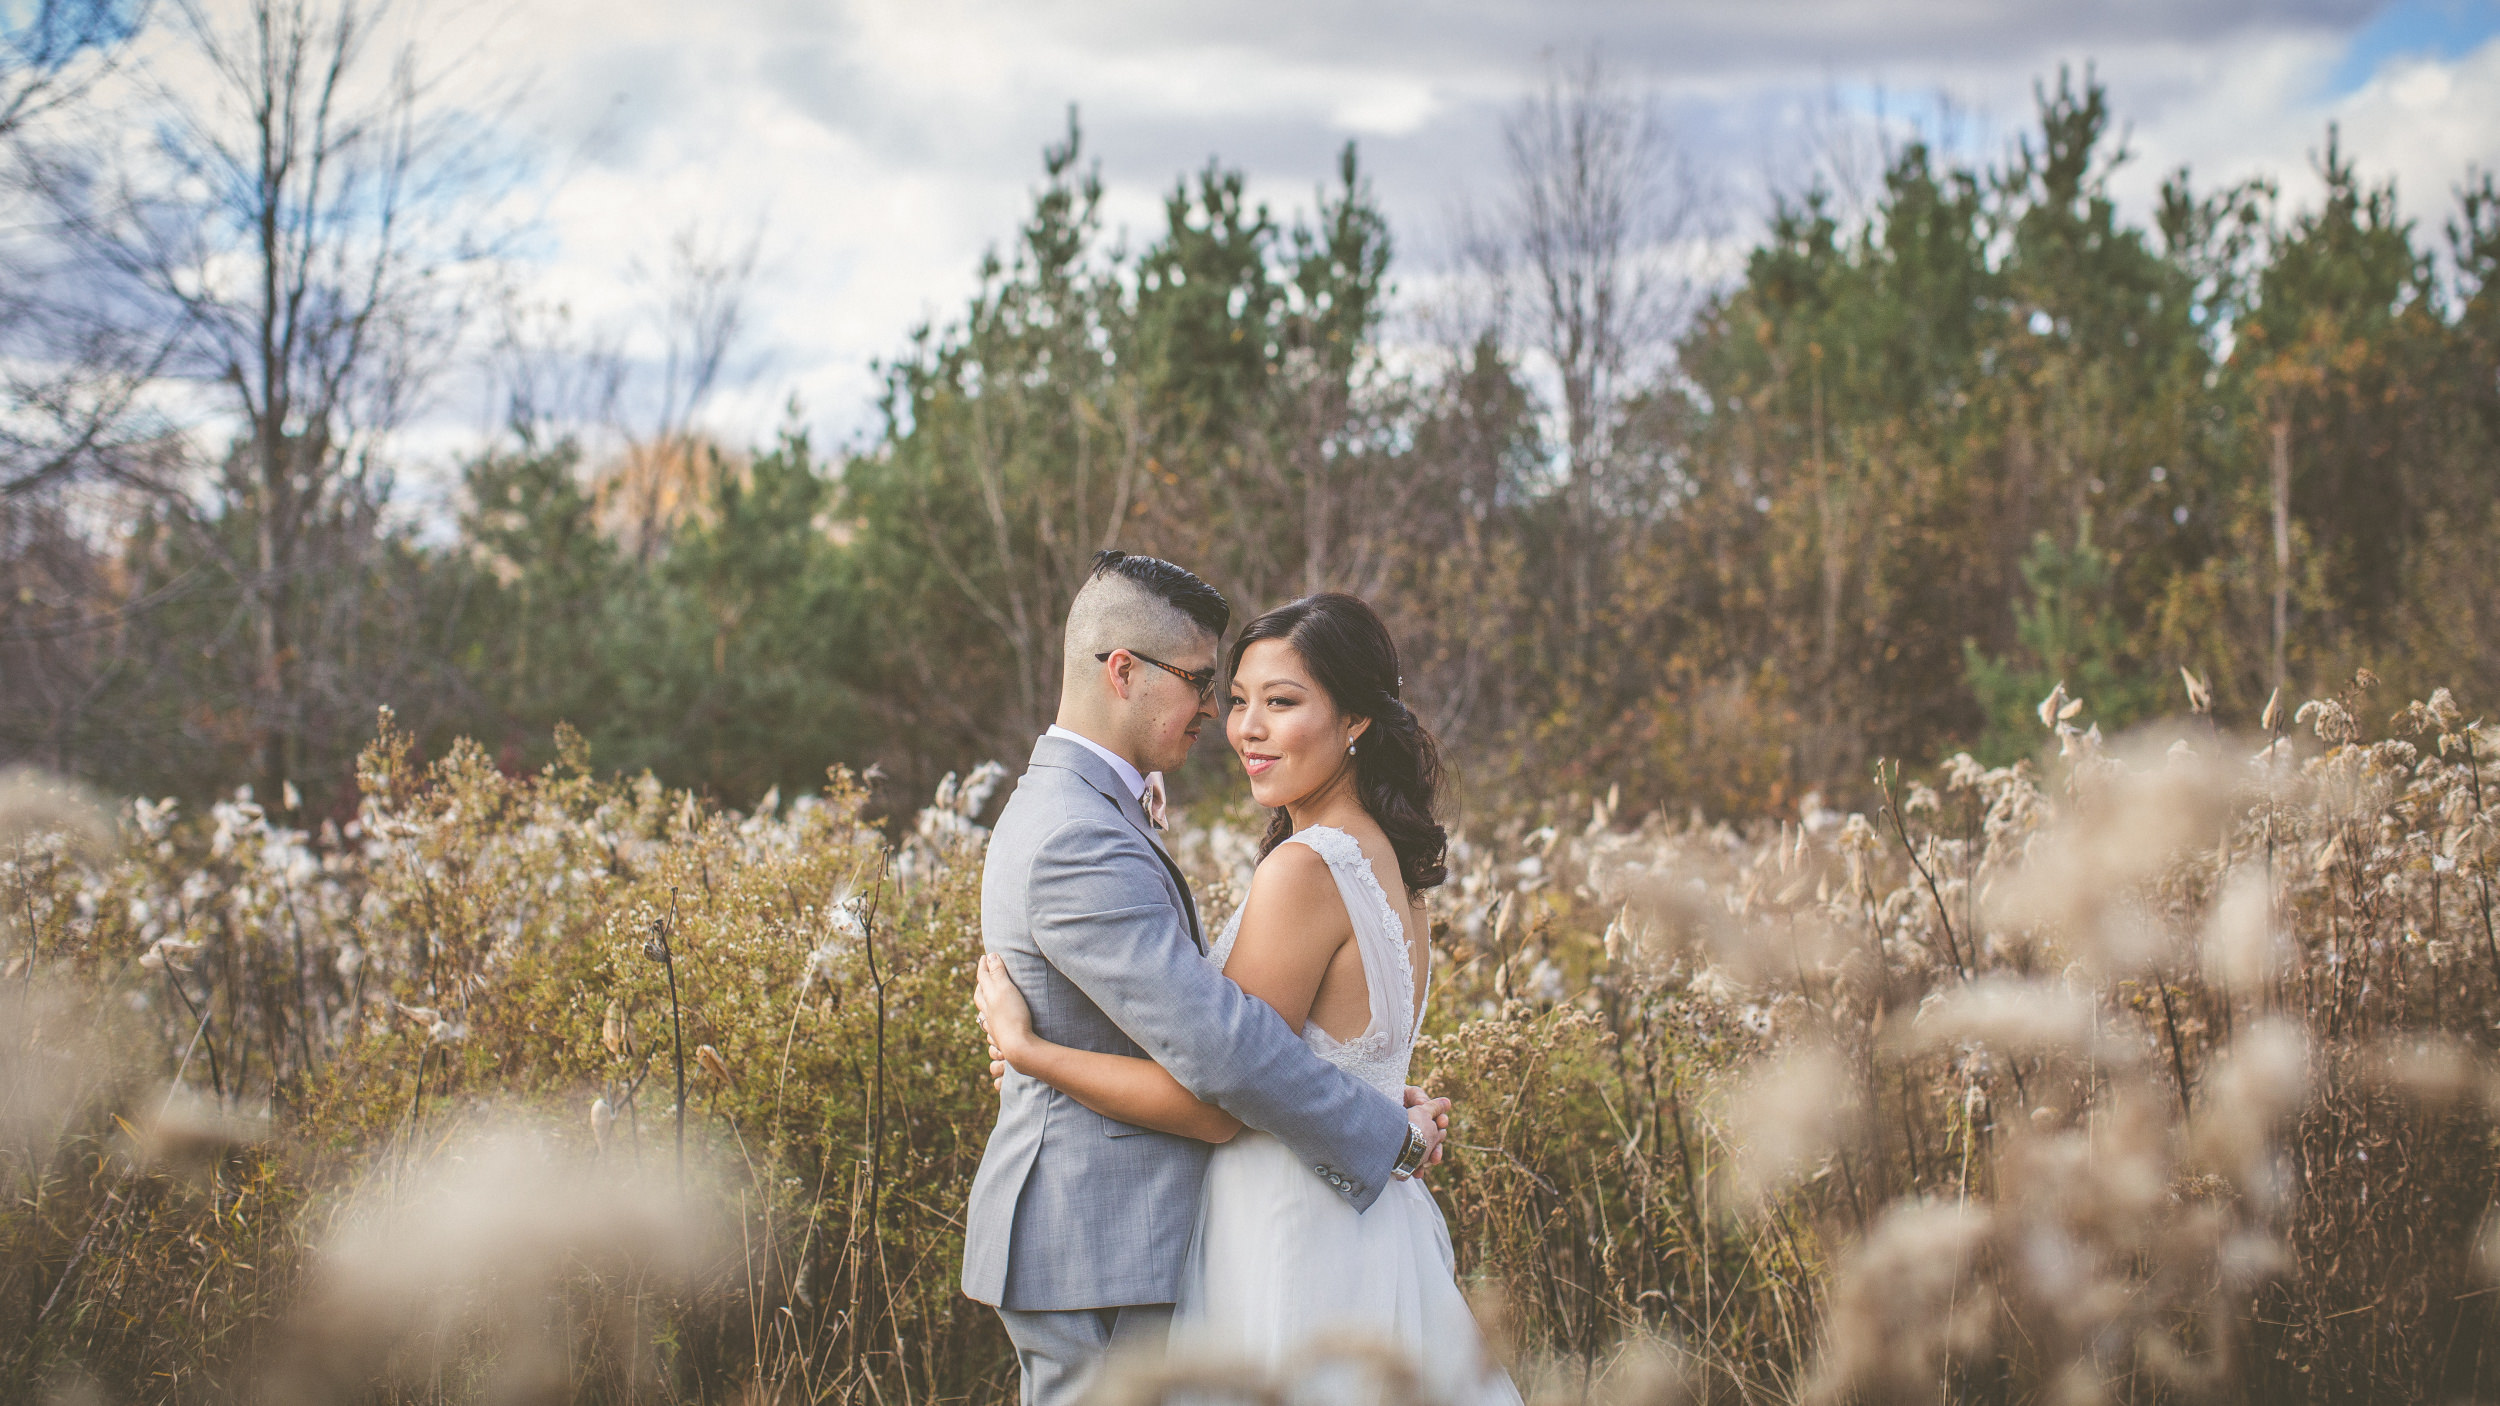 forks of the credit wedding photos, forks of the credit wedding photography, caledon wedding photos, caledon wedding photographer, wedding photos caledon